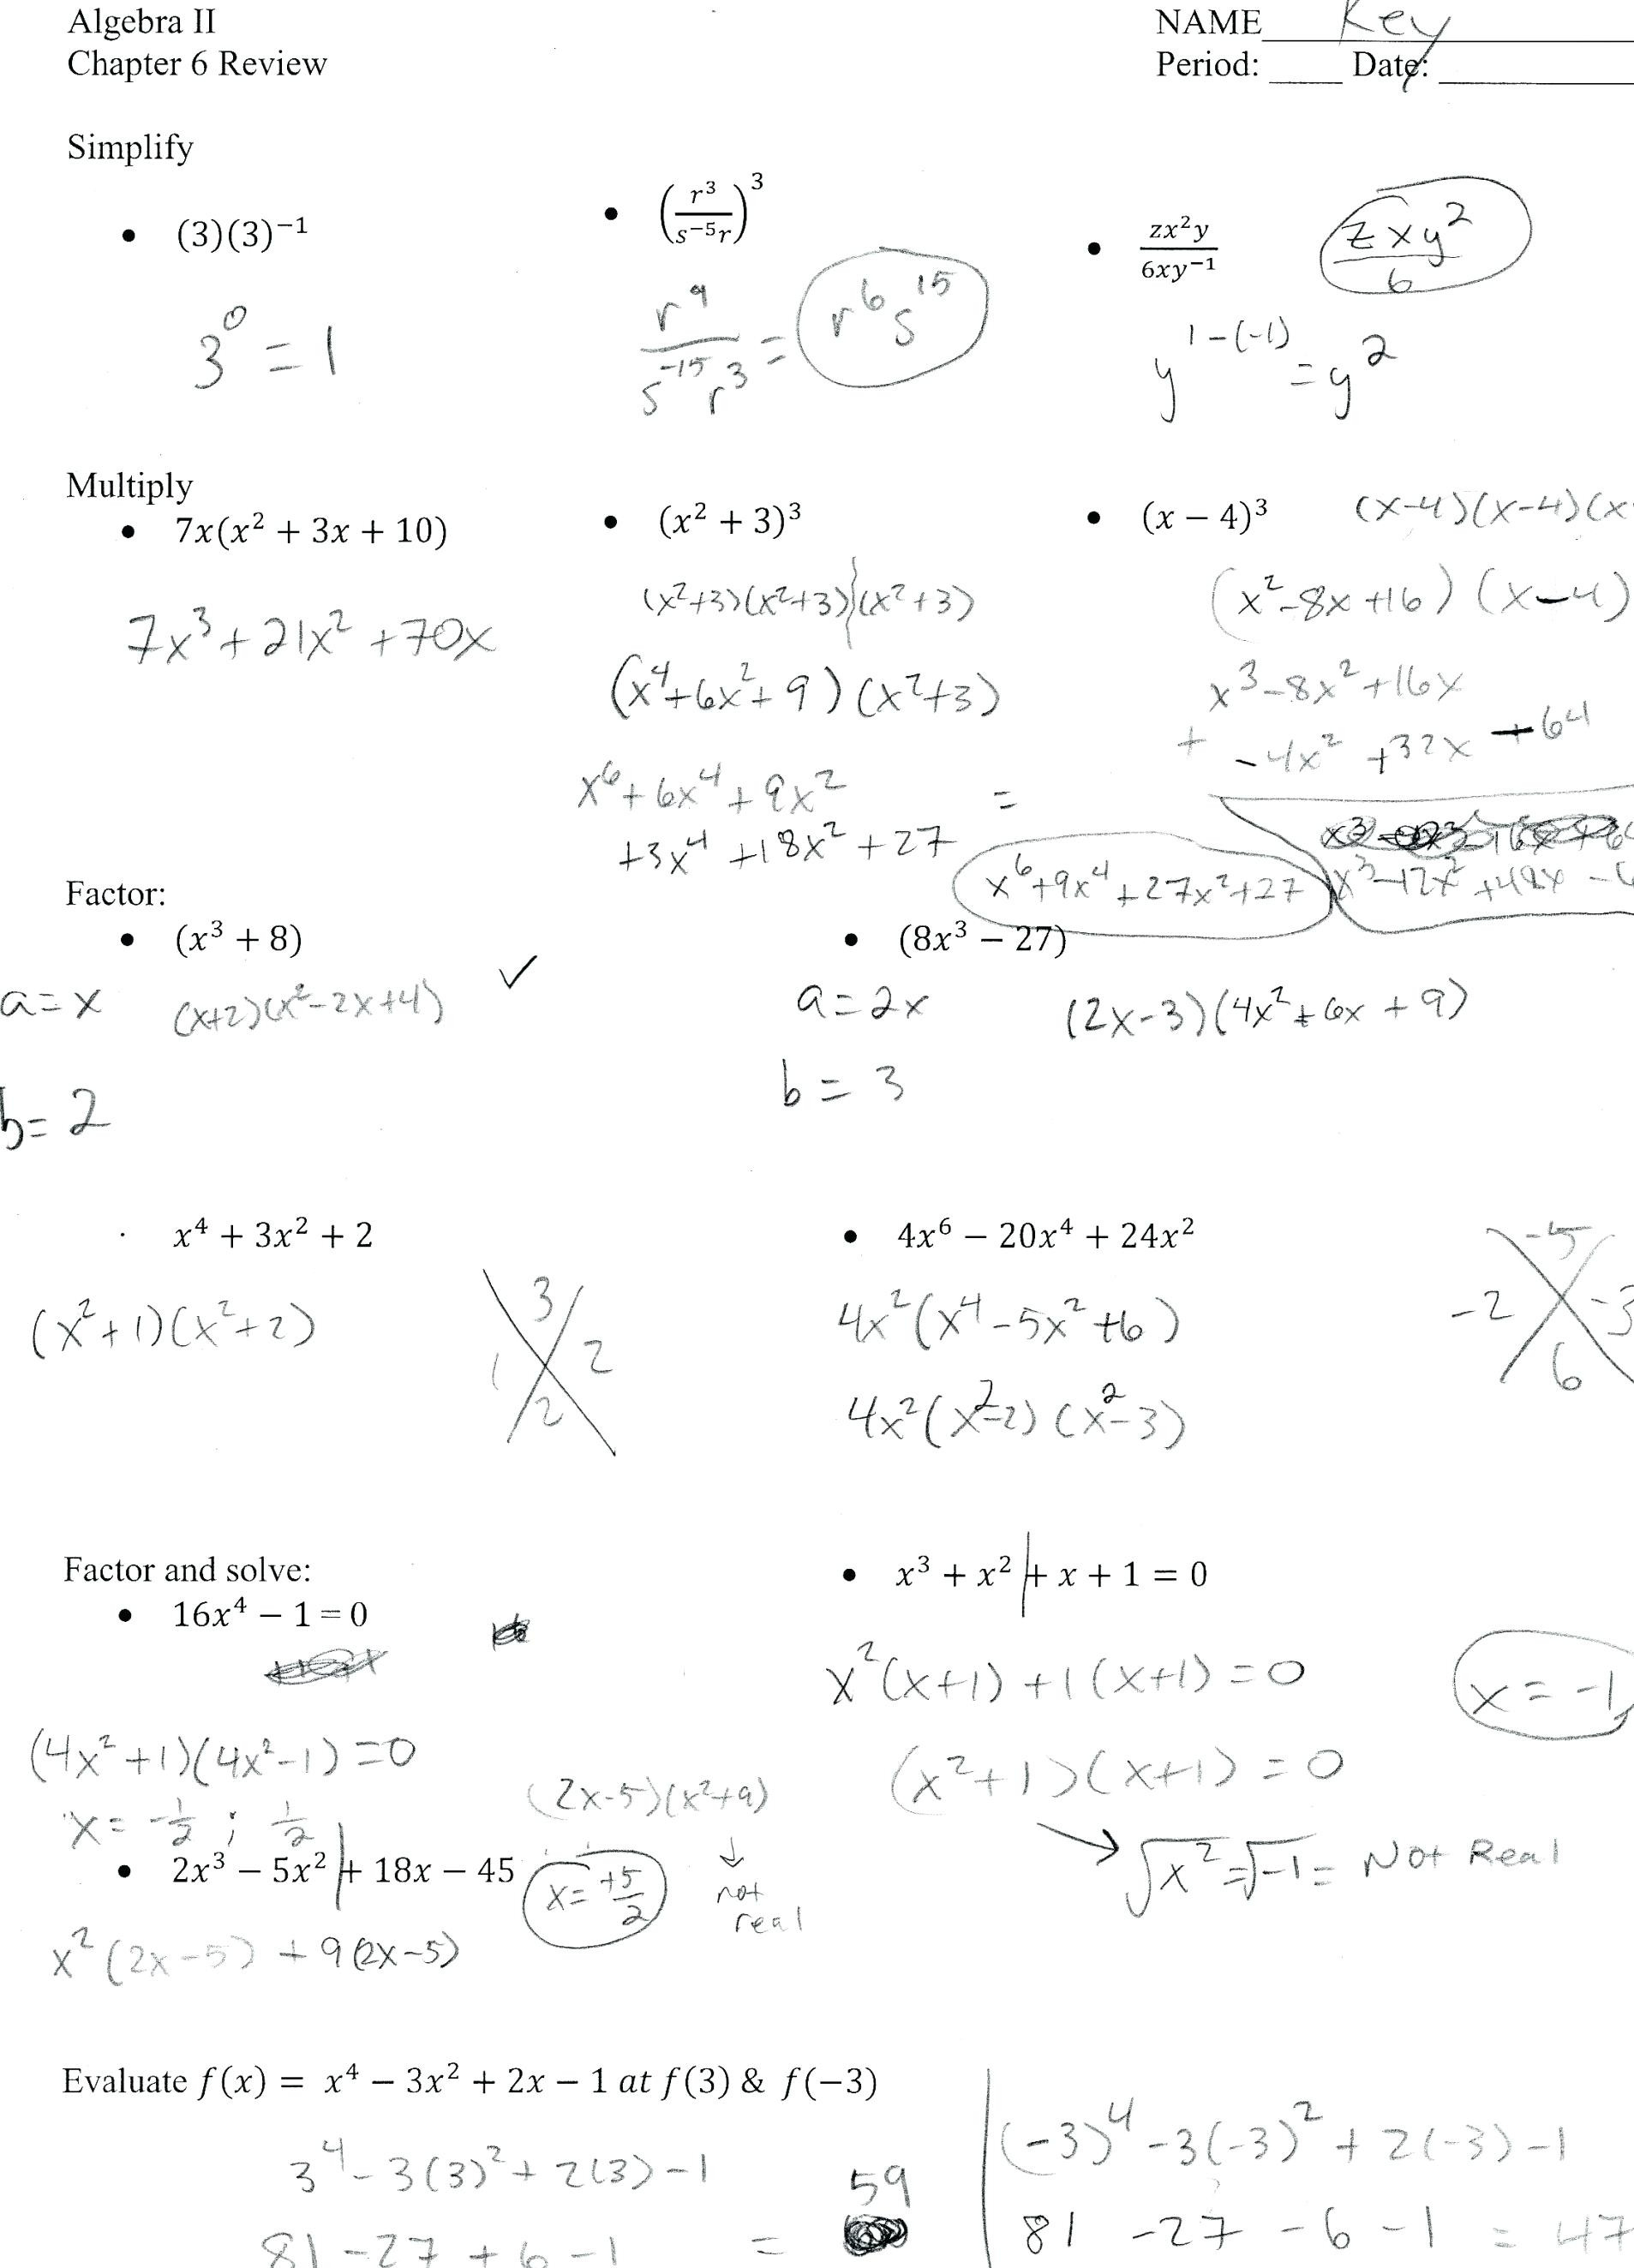 Factoring Worksheet With Answers Math Worksheets Factoring